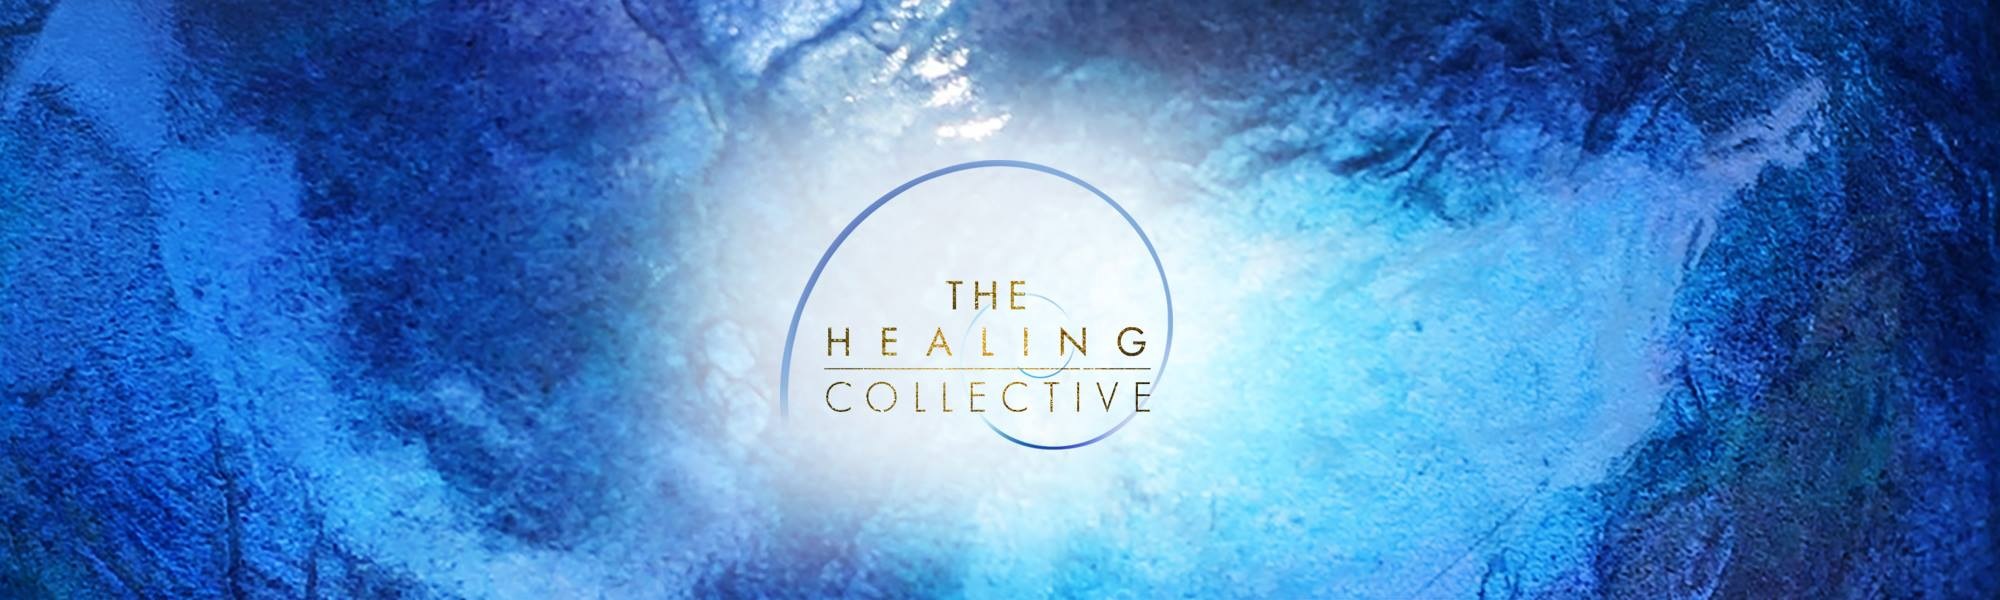 The Healing Collective Banner.jpg